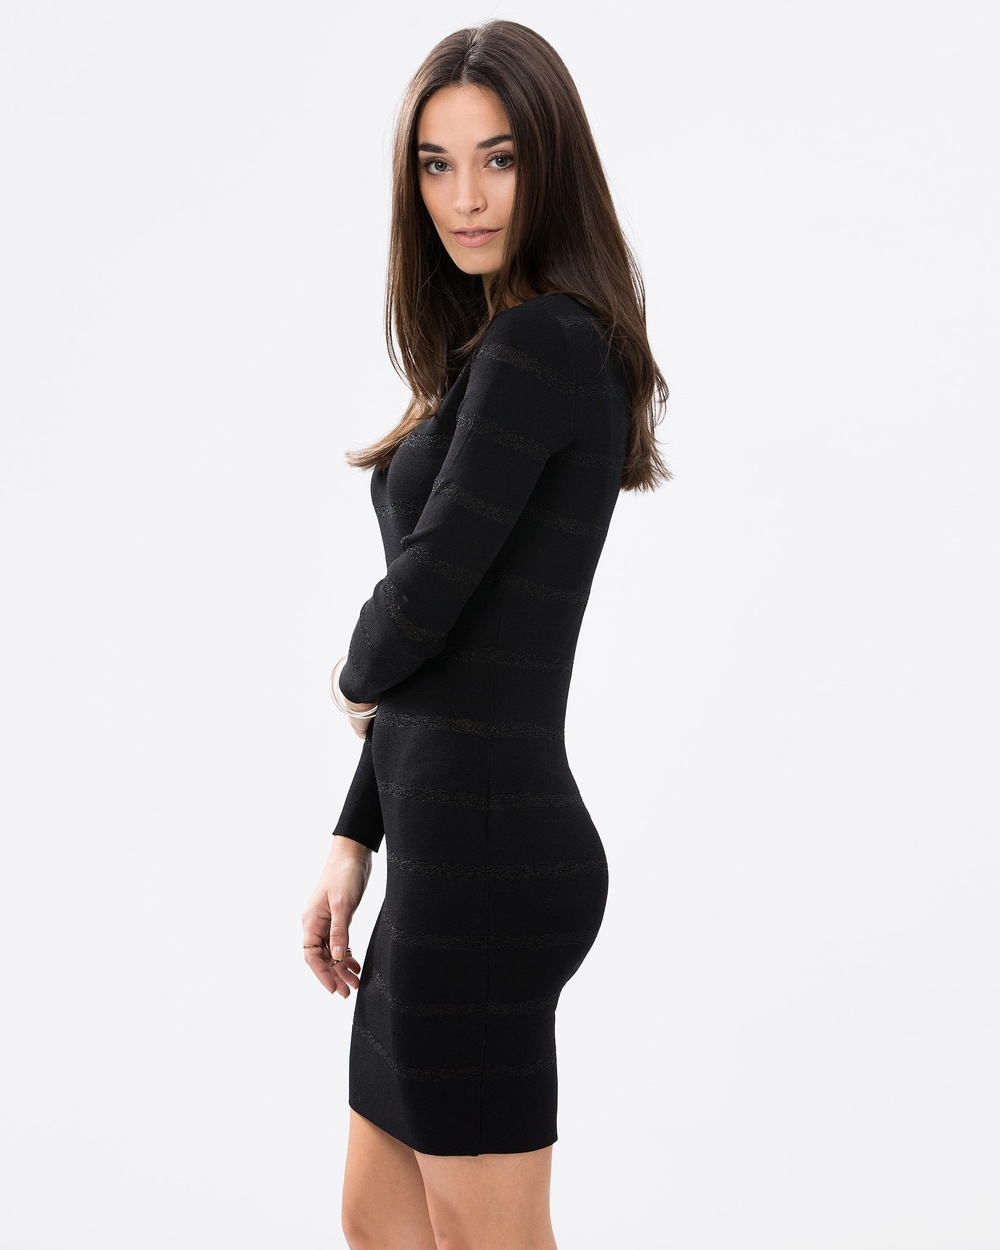 8ecebdef7f3e Long Sleeve Black Tight Sexy bodycon Knitted Dress for women / Women's Sexy  Bodycon Knitted Dress